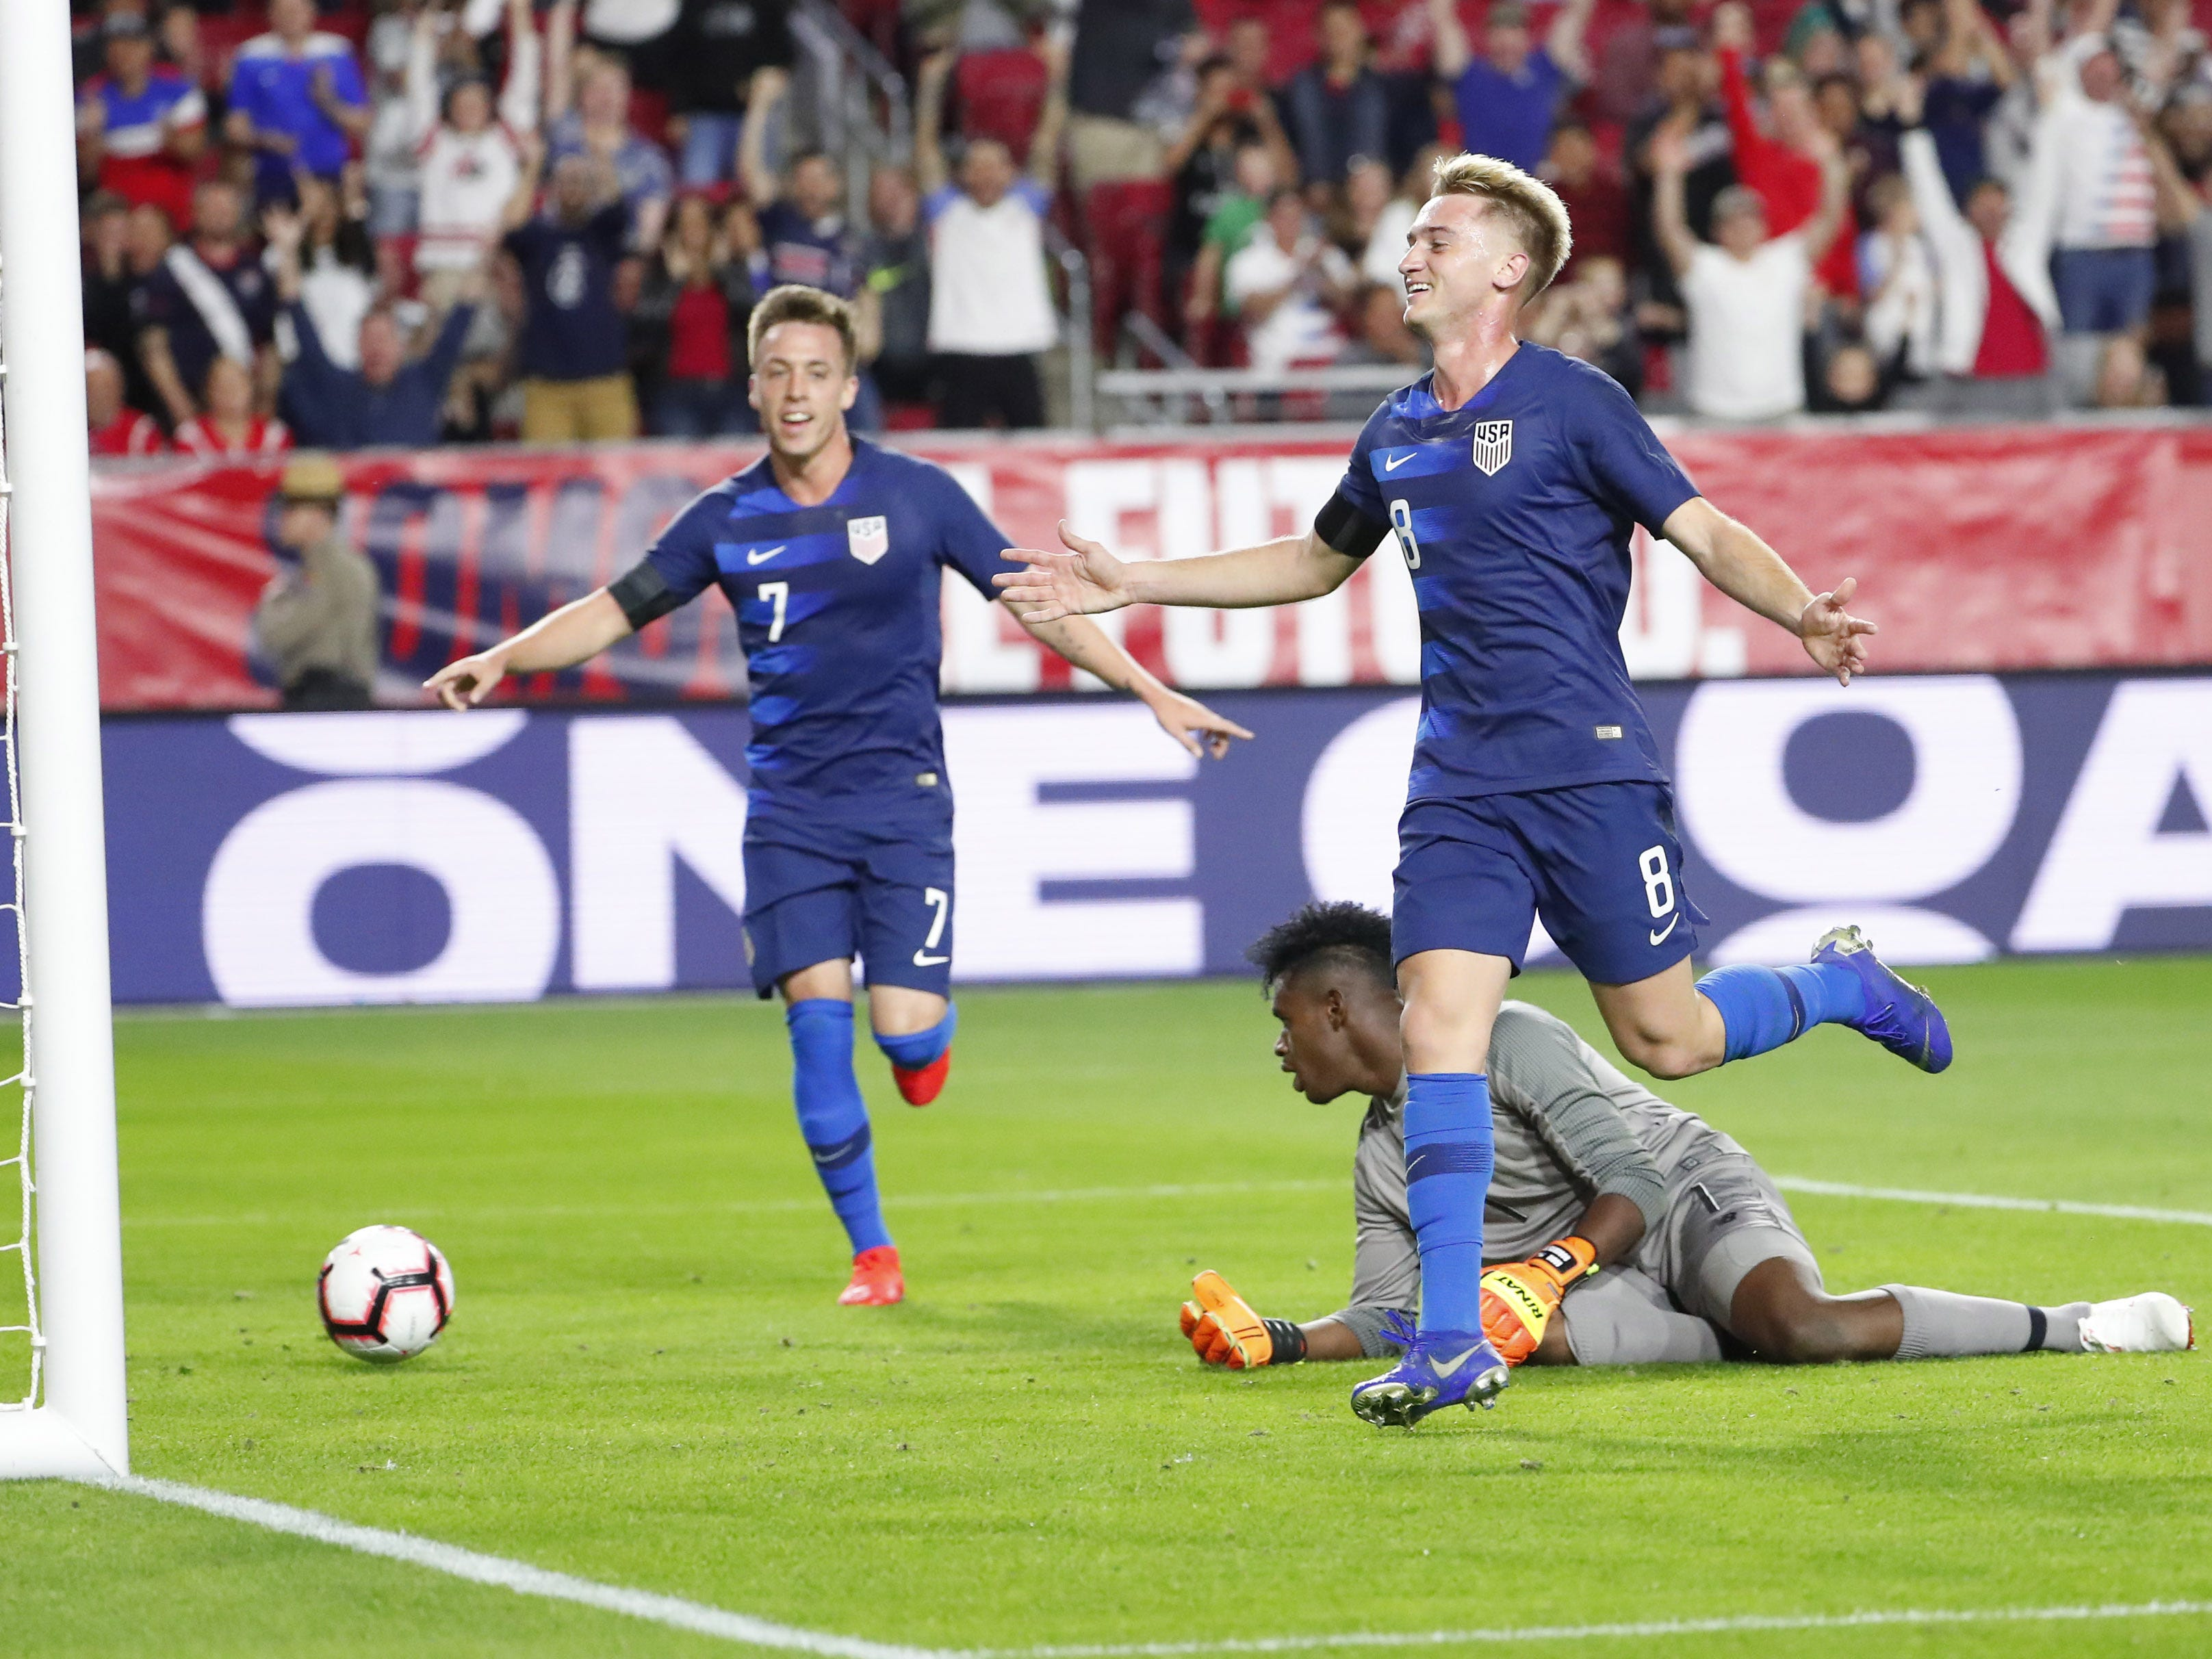 U.S. midfielder Djordje Mihailovic (8) celebrates after scoring against Panama goalkeeper Eddie Roberts (1) during the first half of a friendly between Jan. 27, 2019 in Glendale, Ariz. Forward Corey Baird (7) is at left.